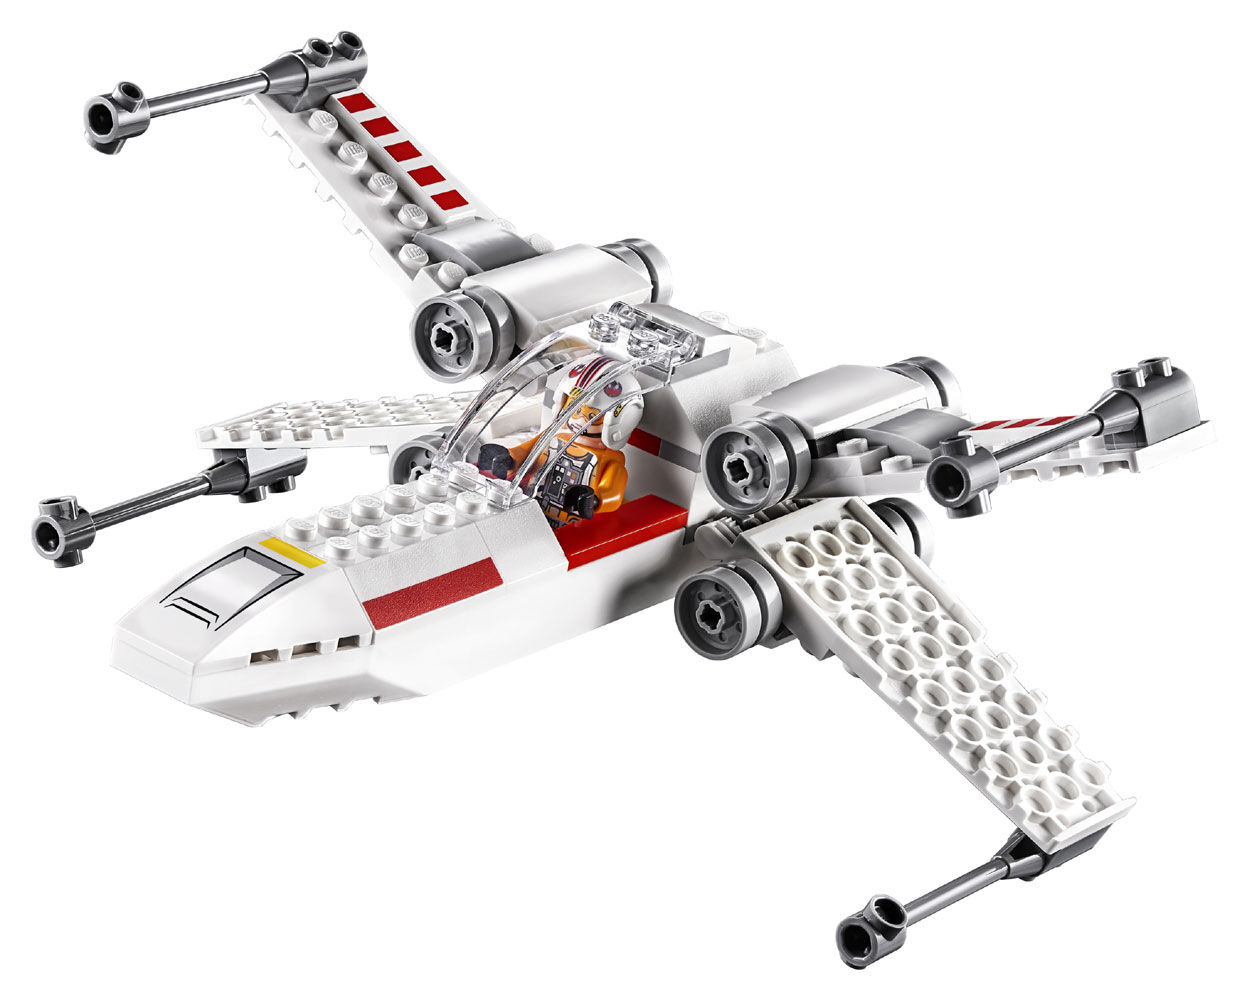 Lego Küchenwaage Lego Baukästen & Sets New 2019... Building Kit Lego Star Wars X-wing Starfighter Trench Run 75235 4 Classiccomforthvac.com